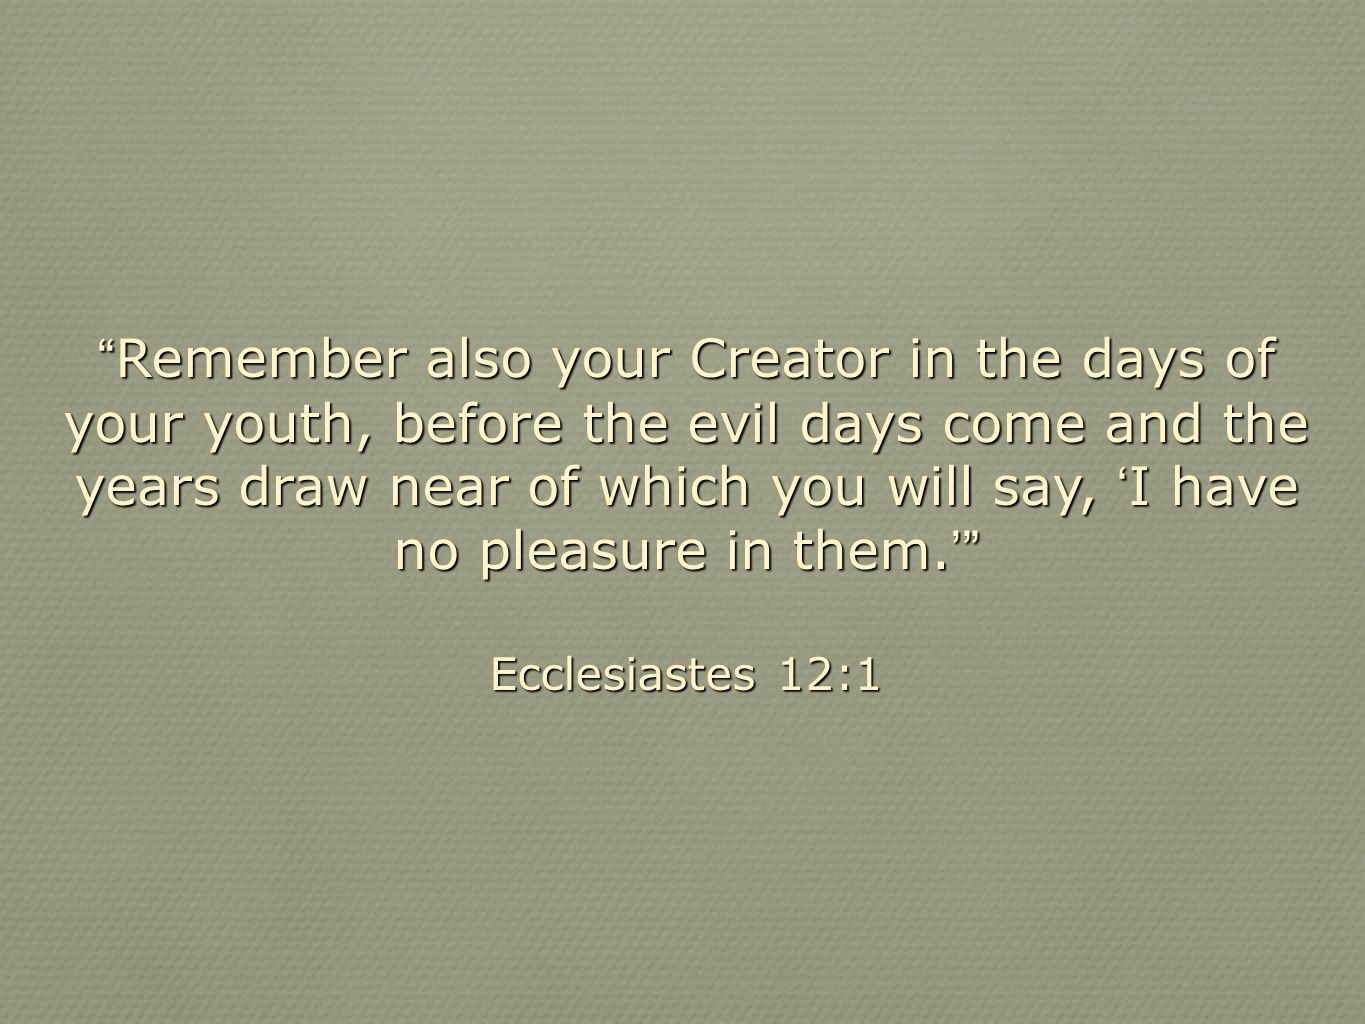 """ Remember also your Creator in the days of your youth, before the evil days come and the years draw near of which you will say, ' I have no pleasure"